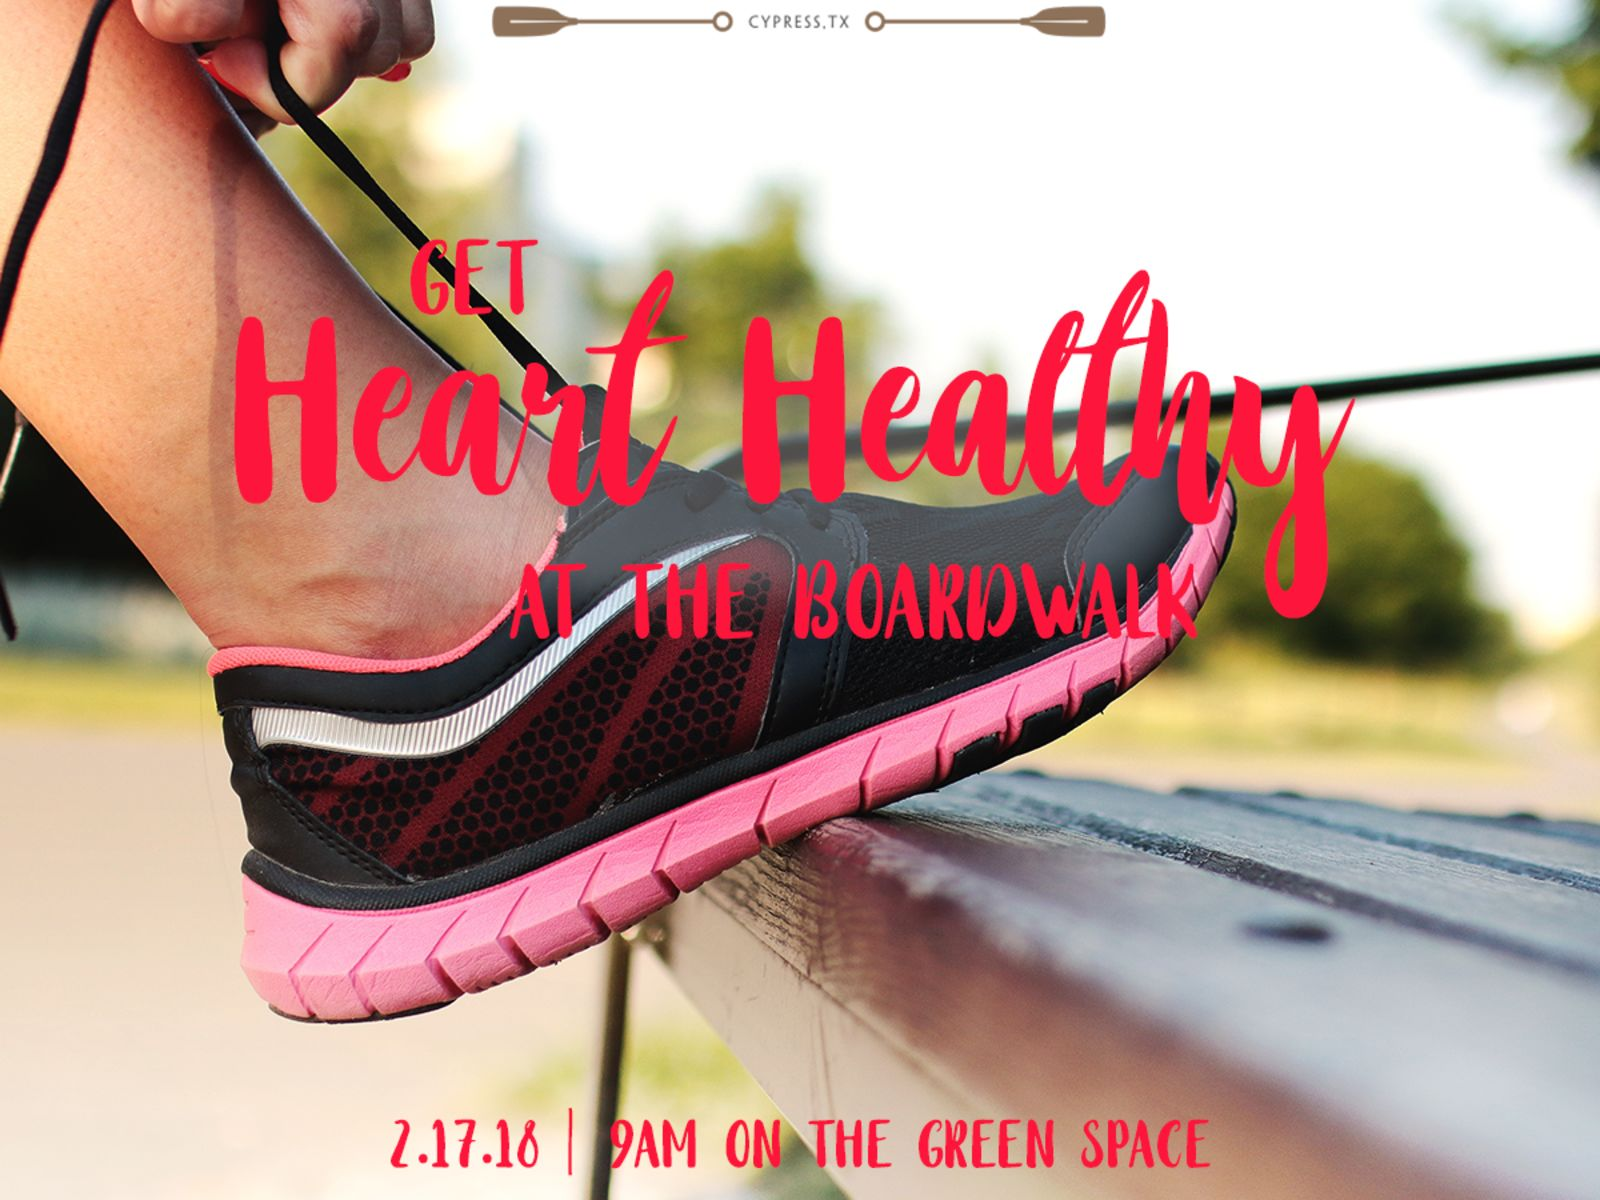 Heart healthy boardwalk event d6j0cd